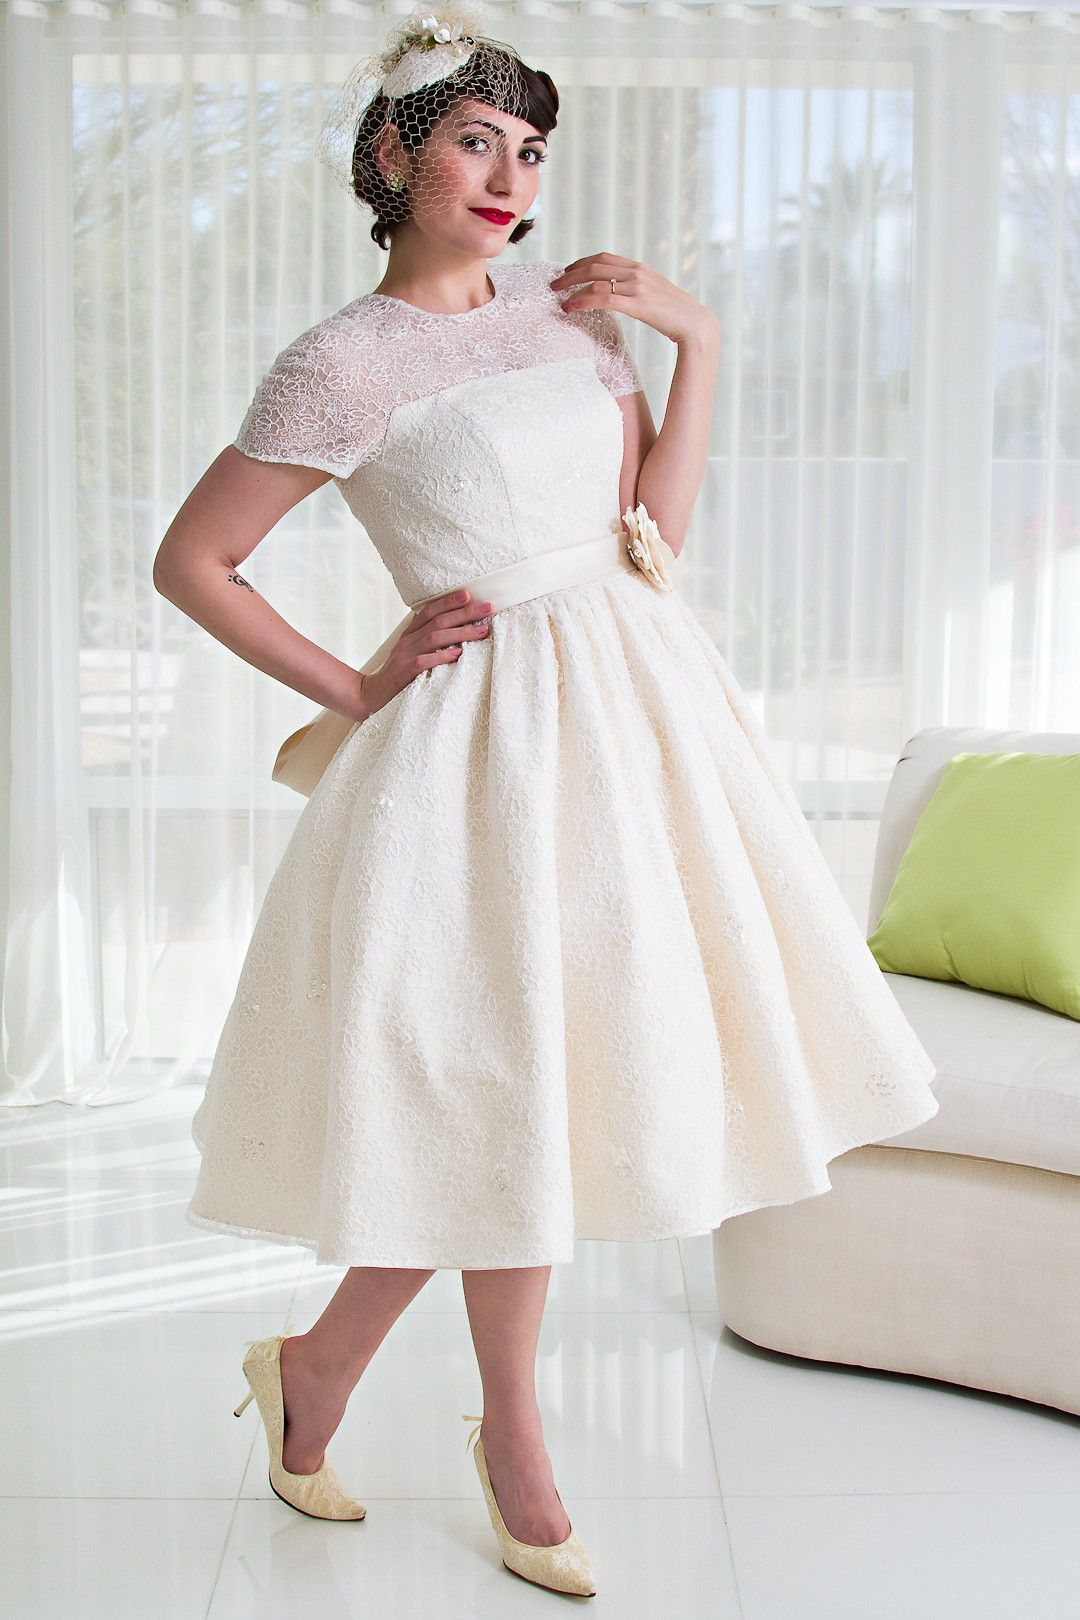 Look at this cute usinspired dress the san marino dollycouture